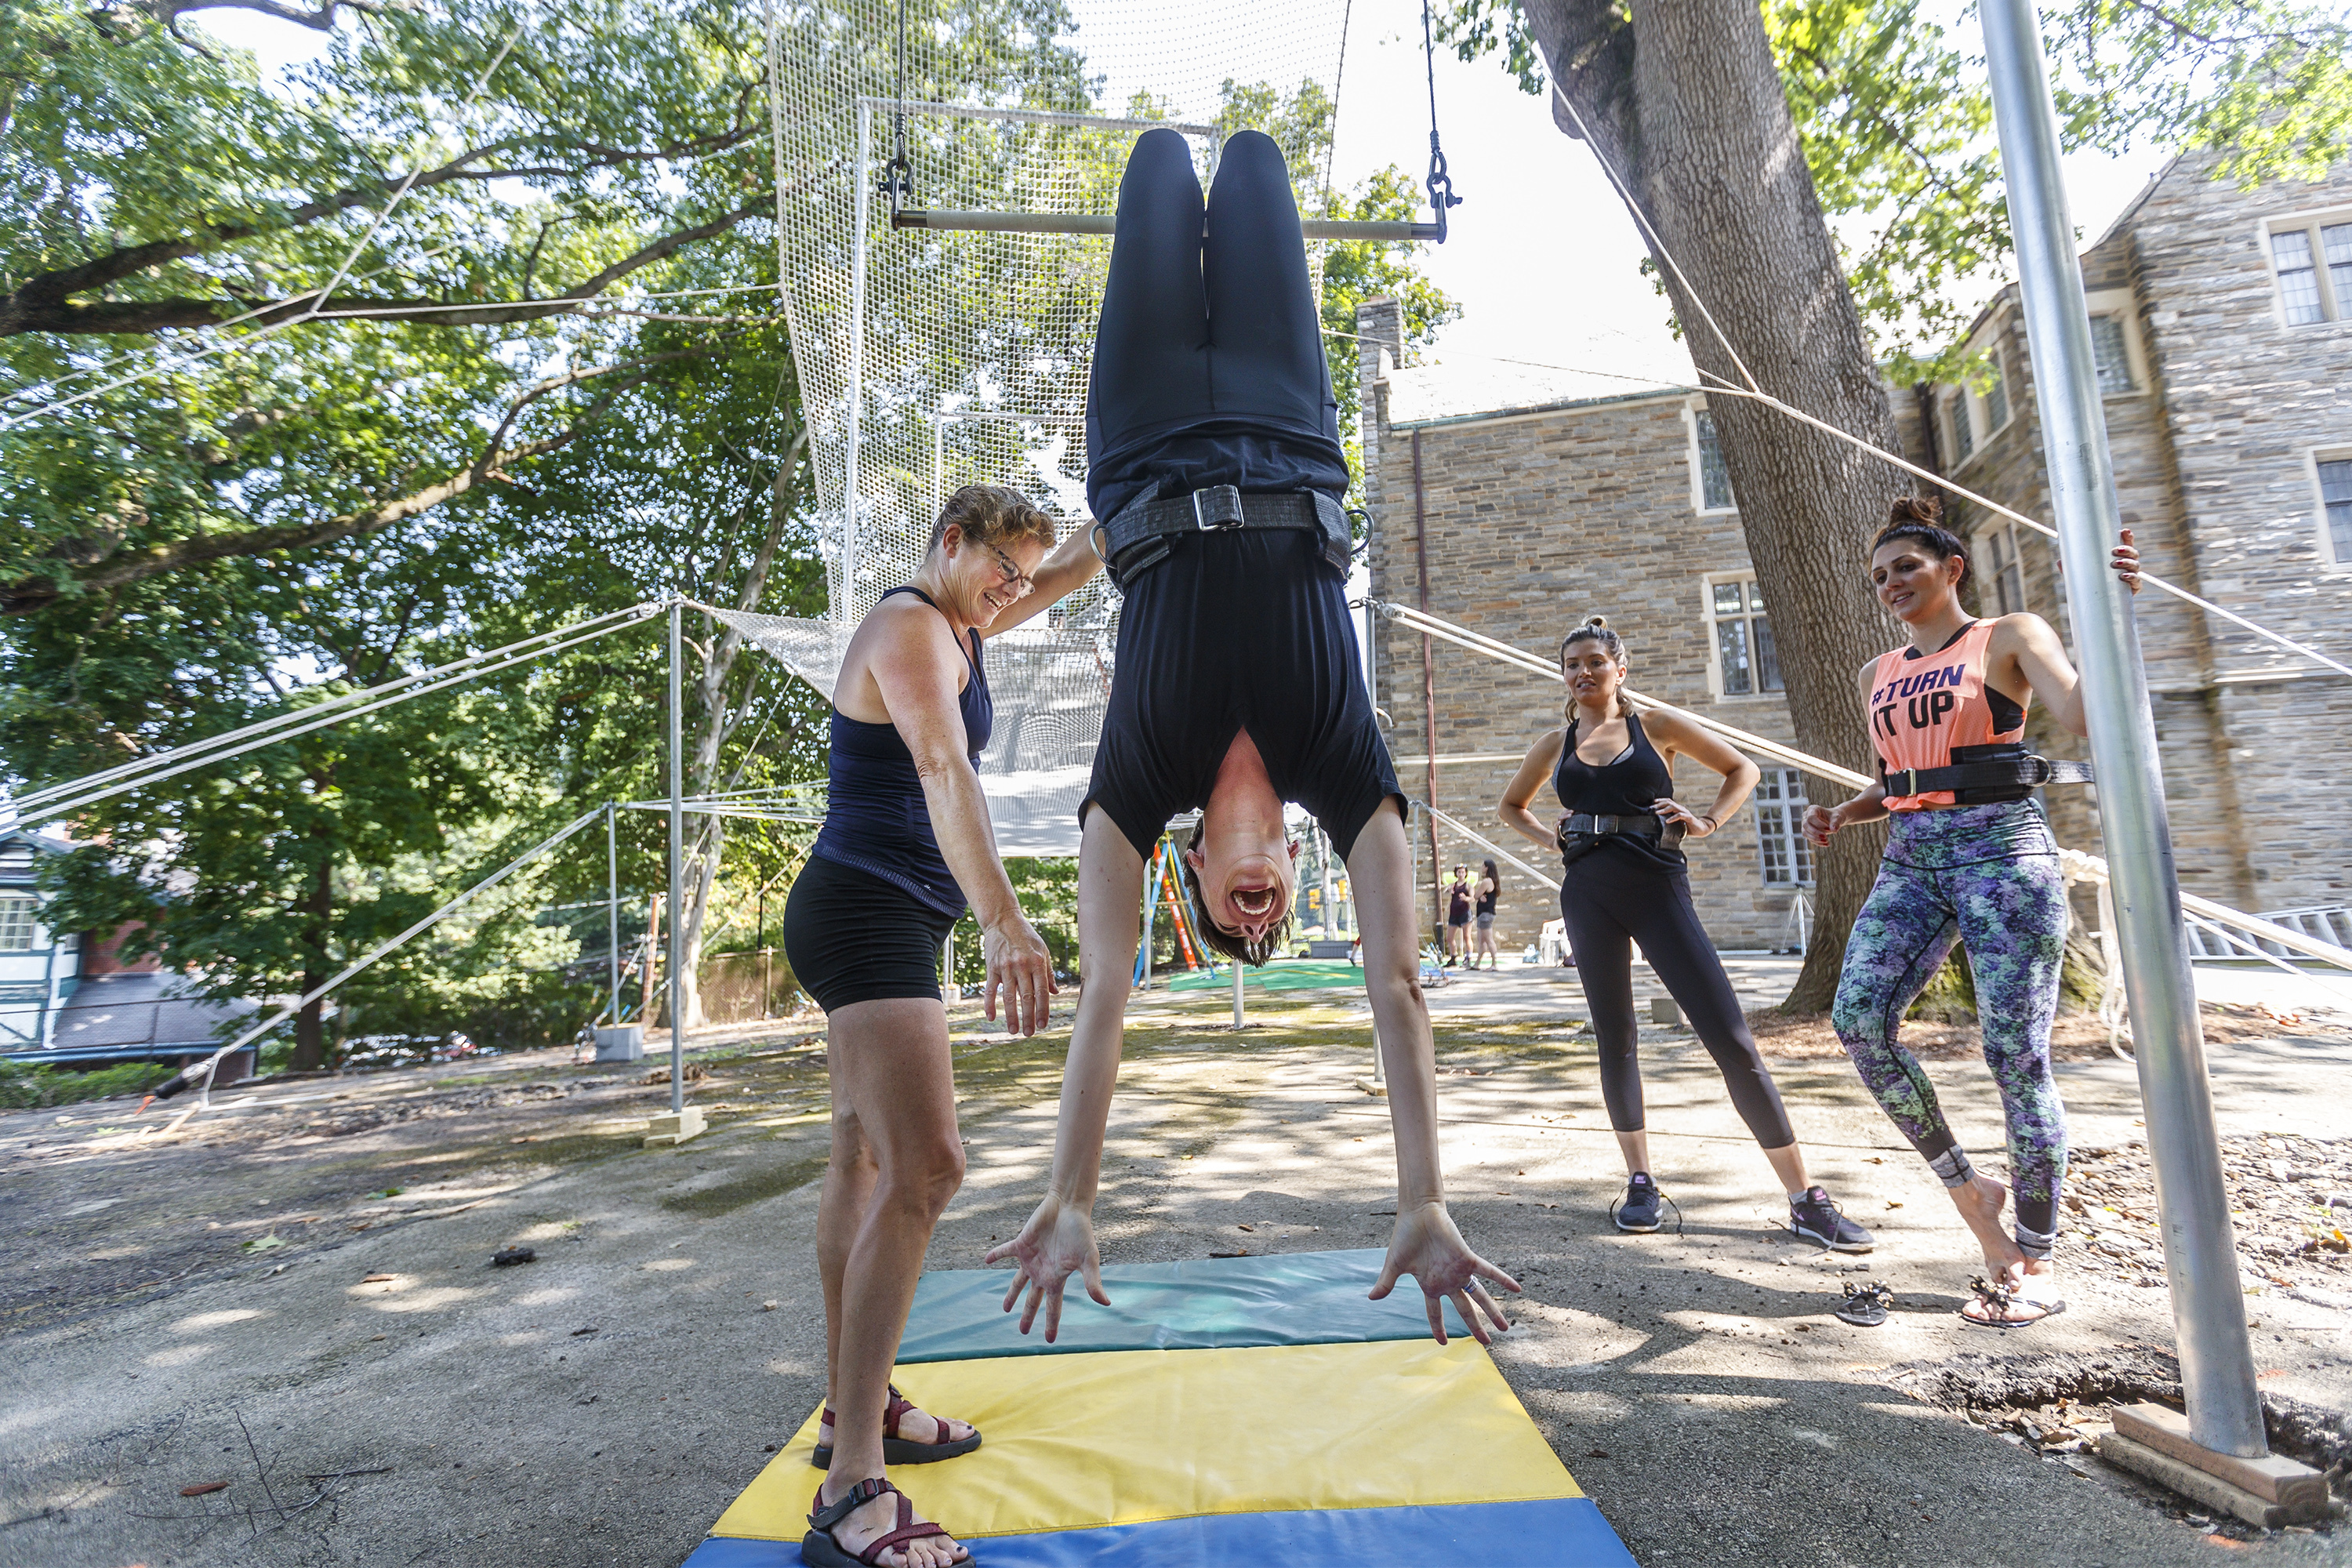 With flying trapeze program director, Mary Kelly Rayel, left, to help her, a first time trapeze student learns the correct way to hang upside down on the bar and hold her hands, at the Philadelphia School of Circus Arts on Wednesday Agust 15, 2018.